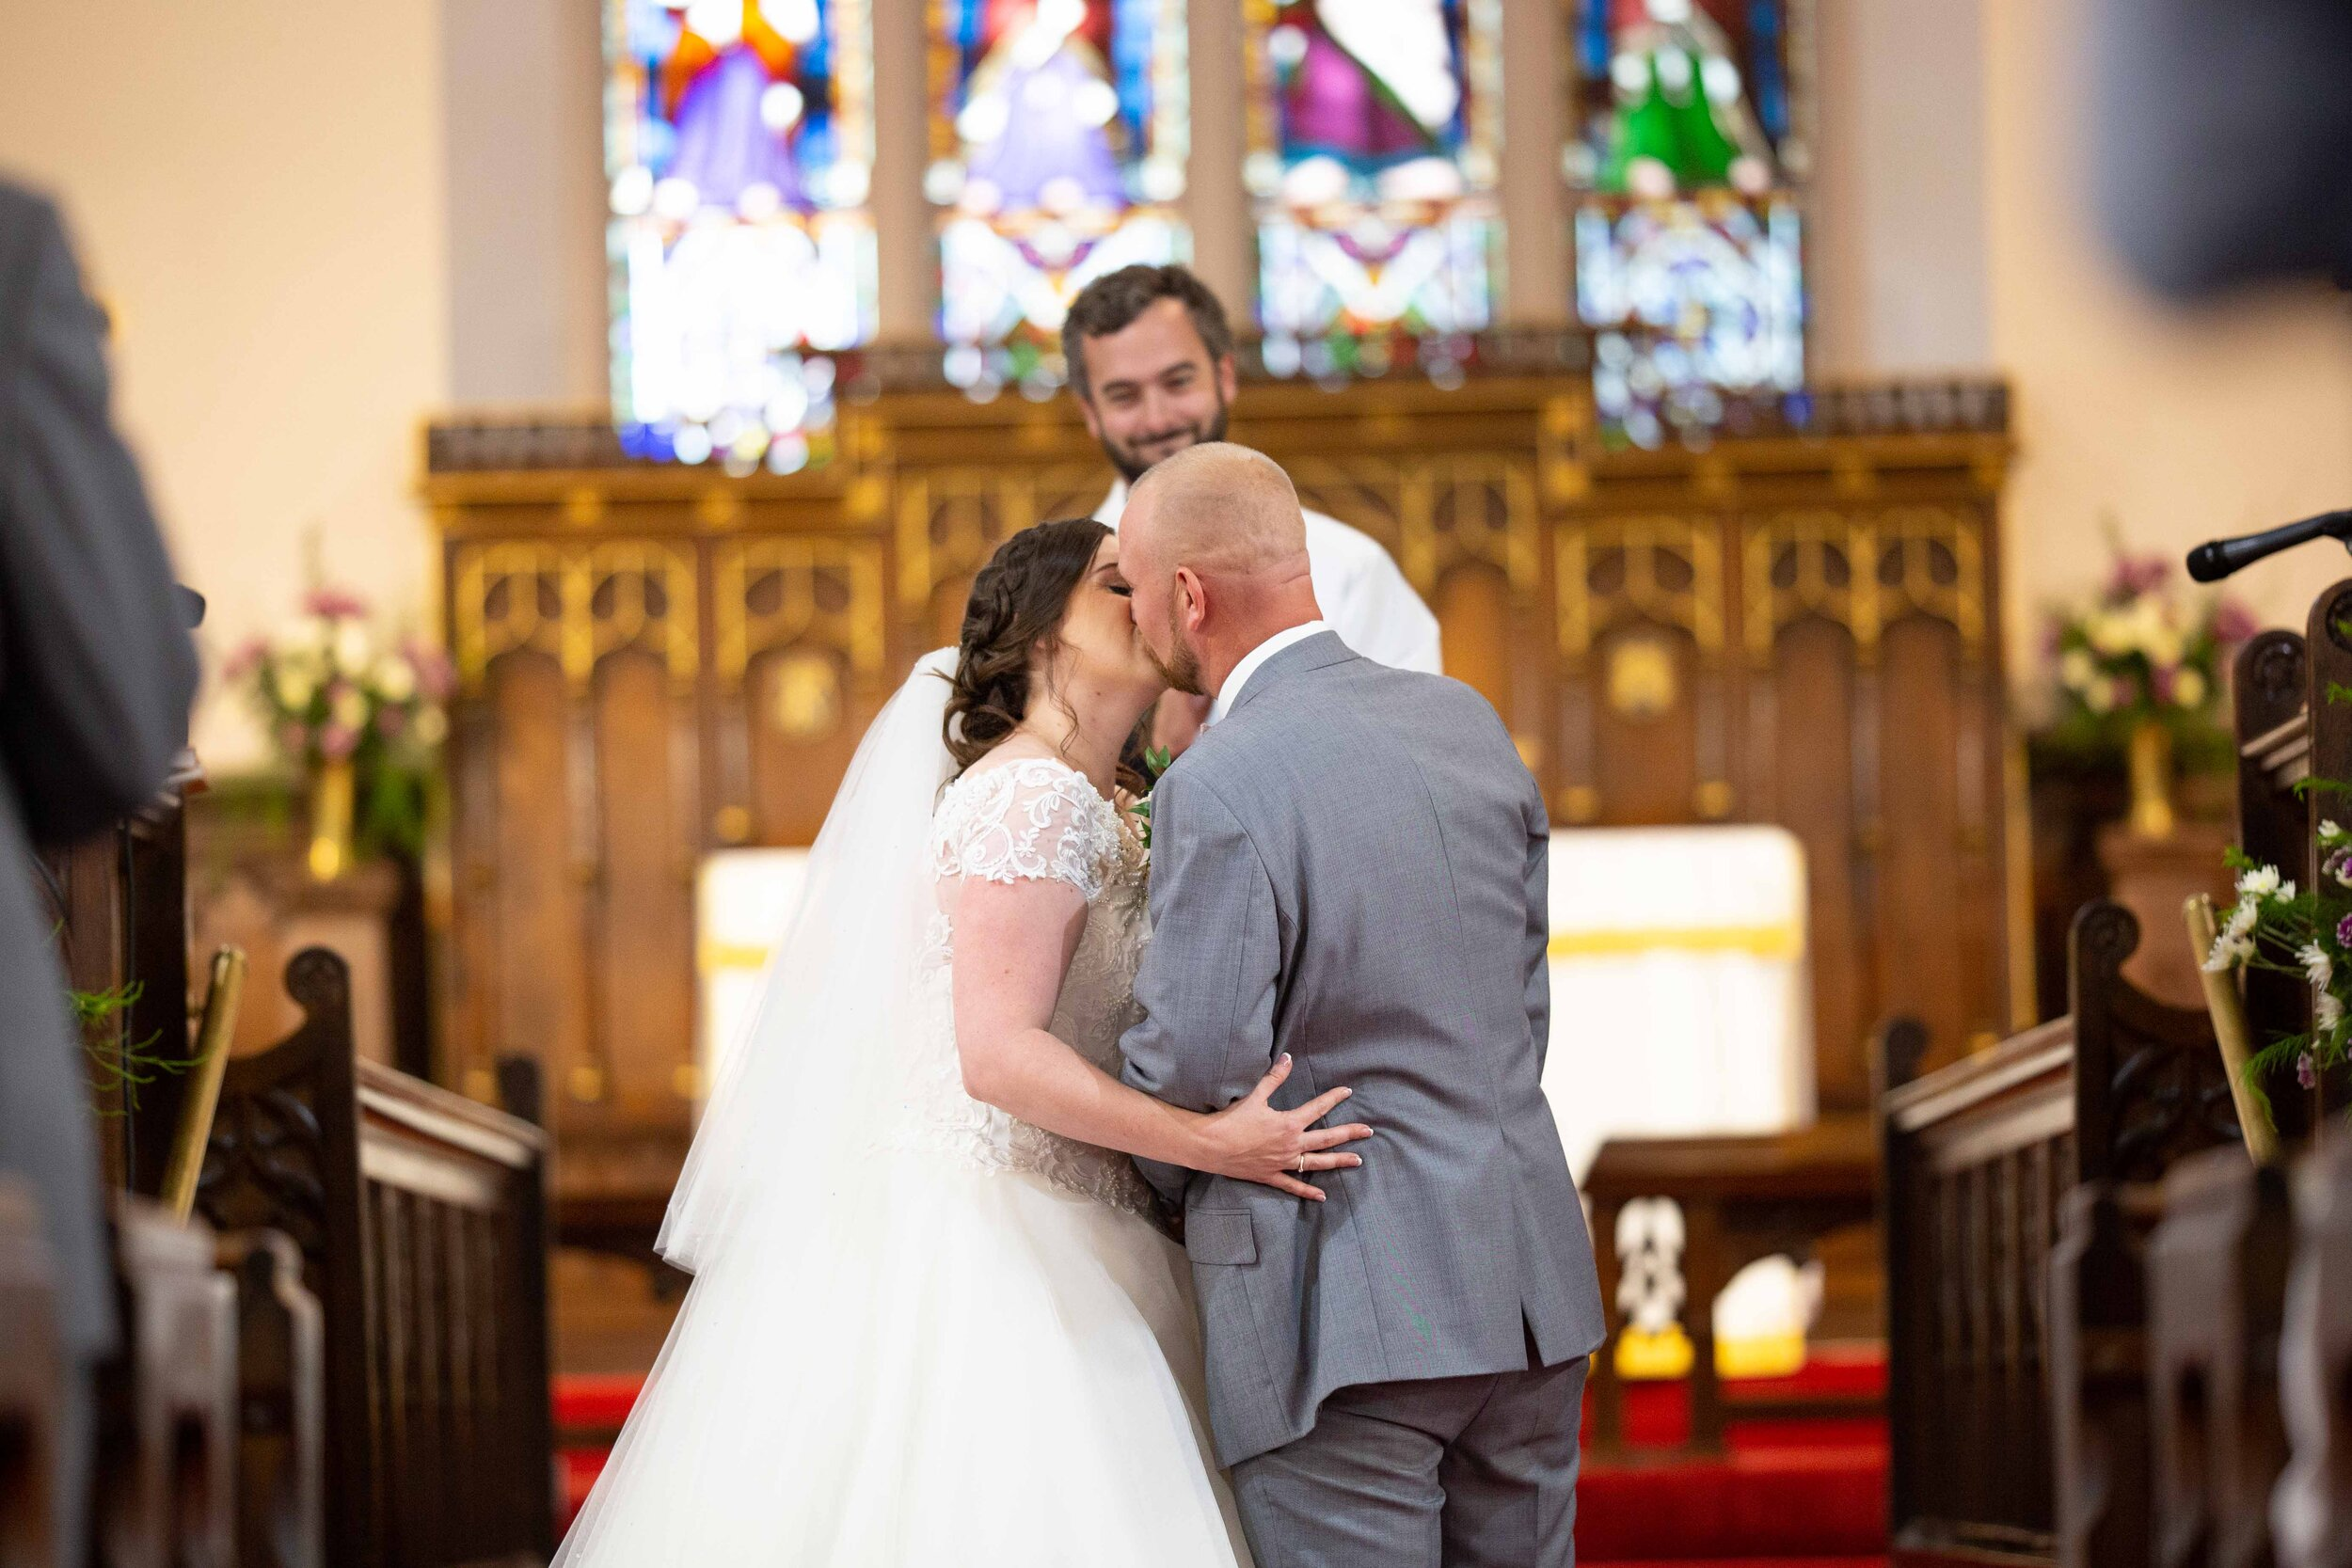 Lea Cooper photography - wedding photography - st Lawrence church dalaston West Midlands Willenhall Wednesday wedding photographer Brookfields club house cannock road - 23.JPG